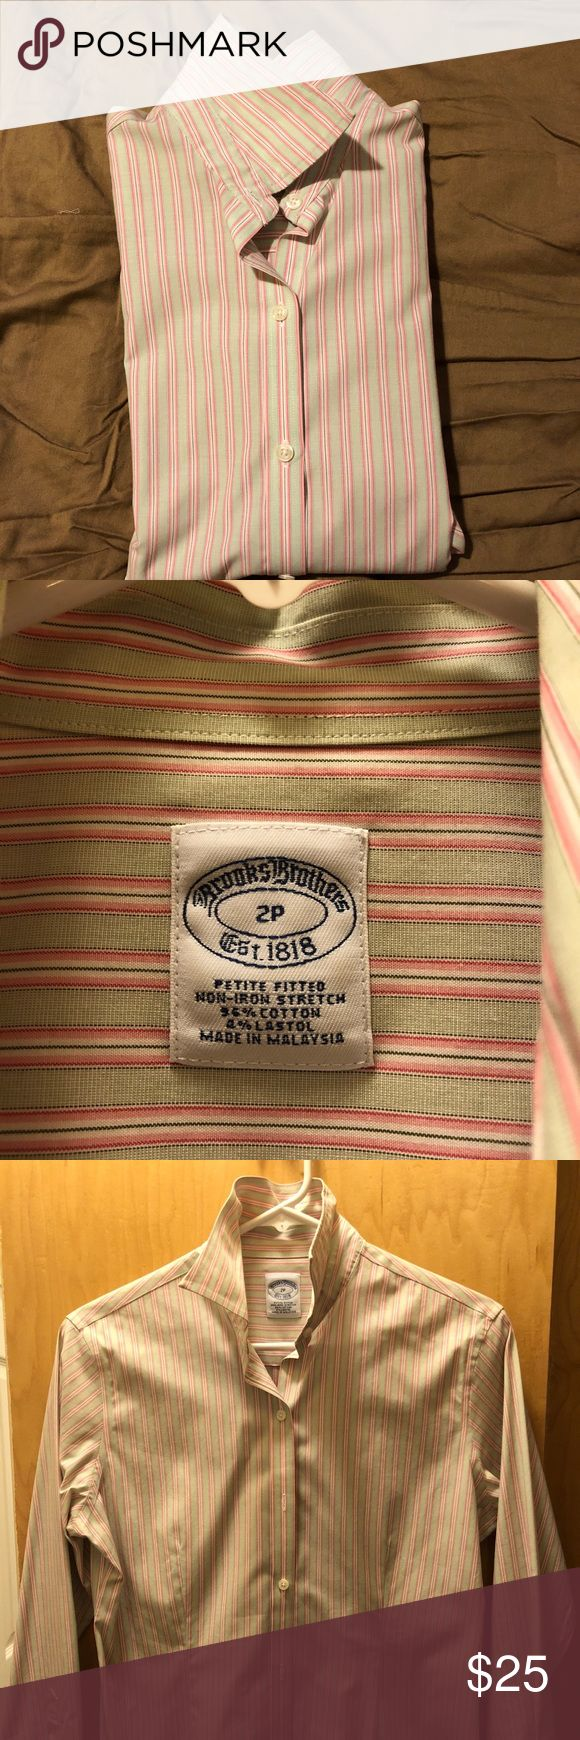 Brooks Brothers Fitted Non-iron shirt W Never been worn, received it as a gift. Great shirt for work. 100% machine washable and iron free. Save you the expensive trip to the dry cleaner.  Petite fitted! Brooks Brothers Tops Button Down Shirts